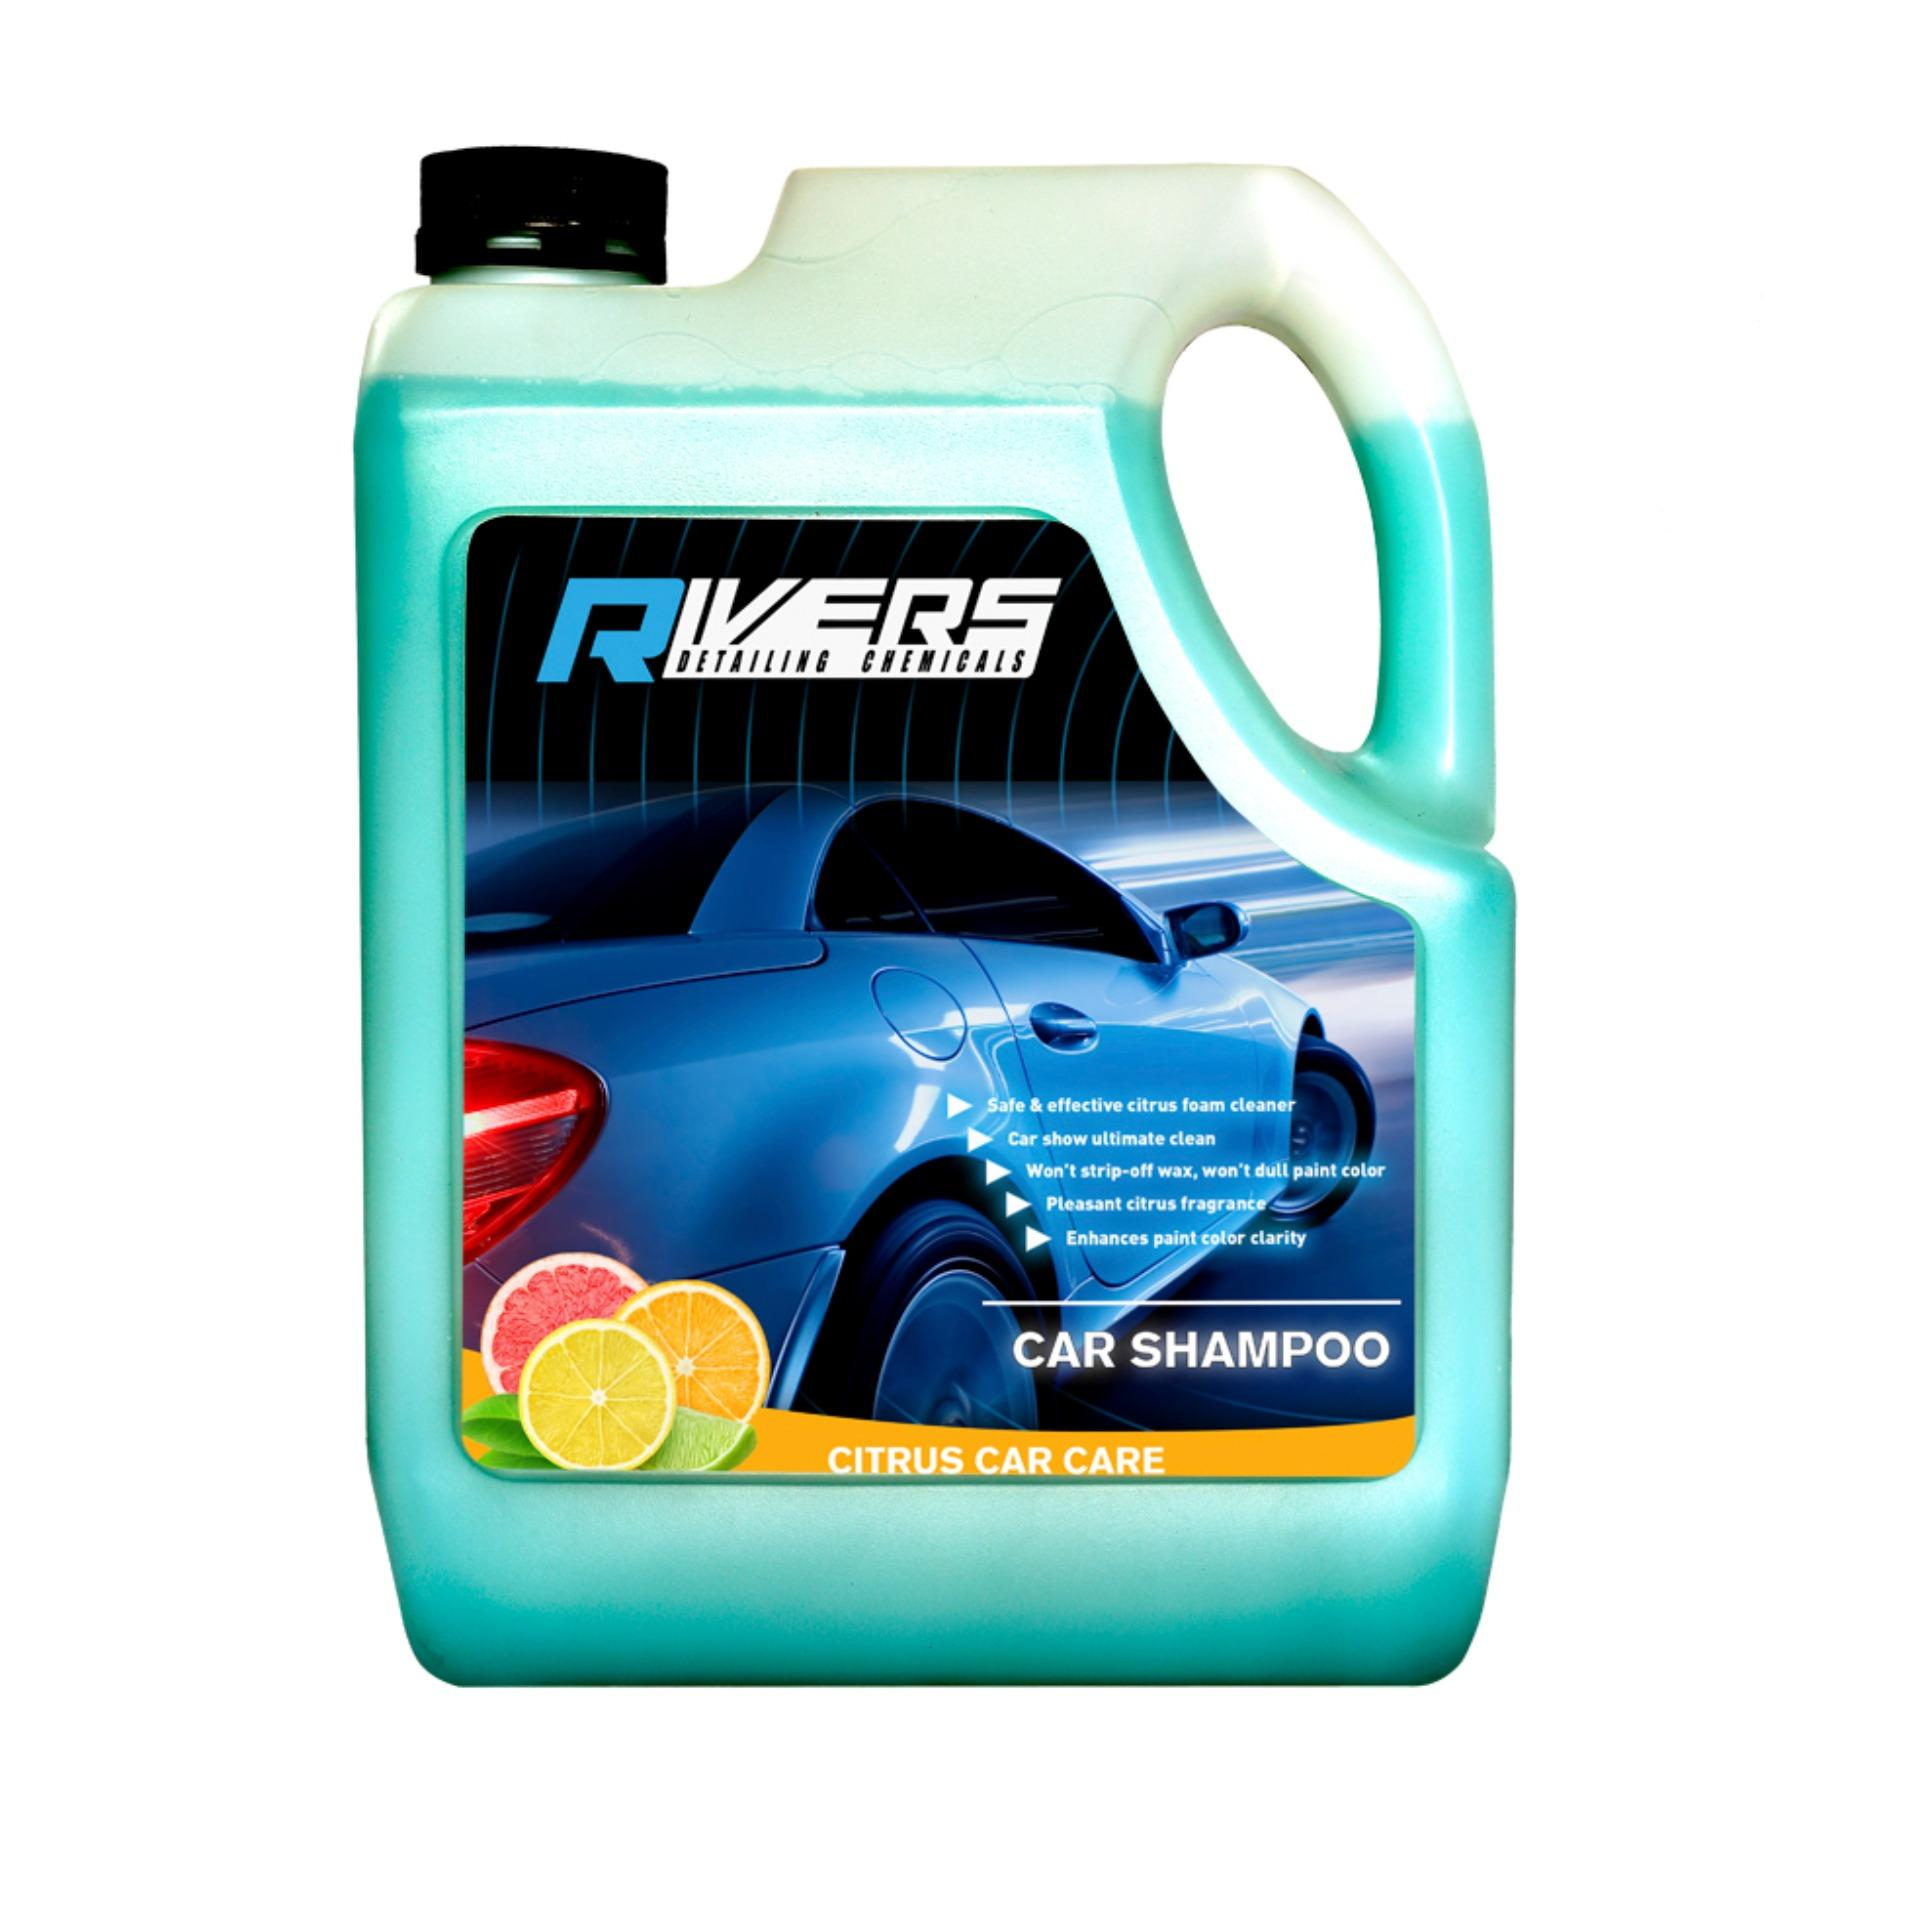 Rivers Citrus Car Shampoo 1 Gal. Or 4 Liters By Rivers..